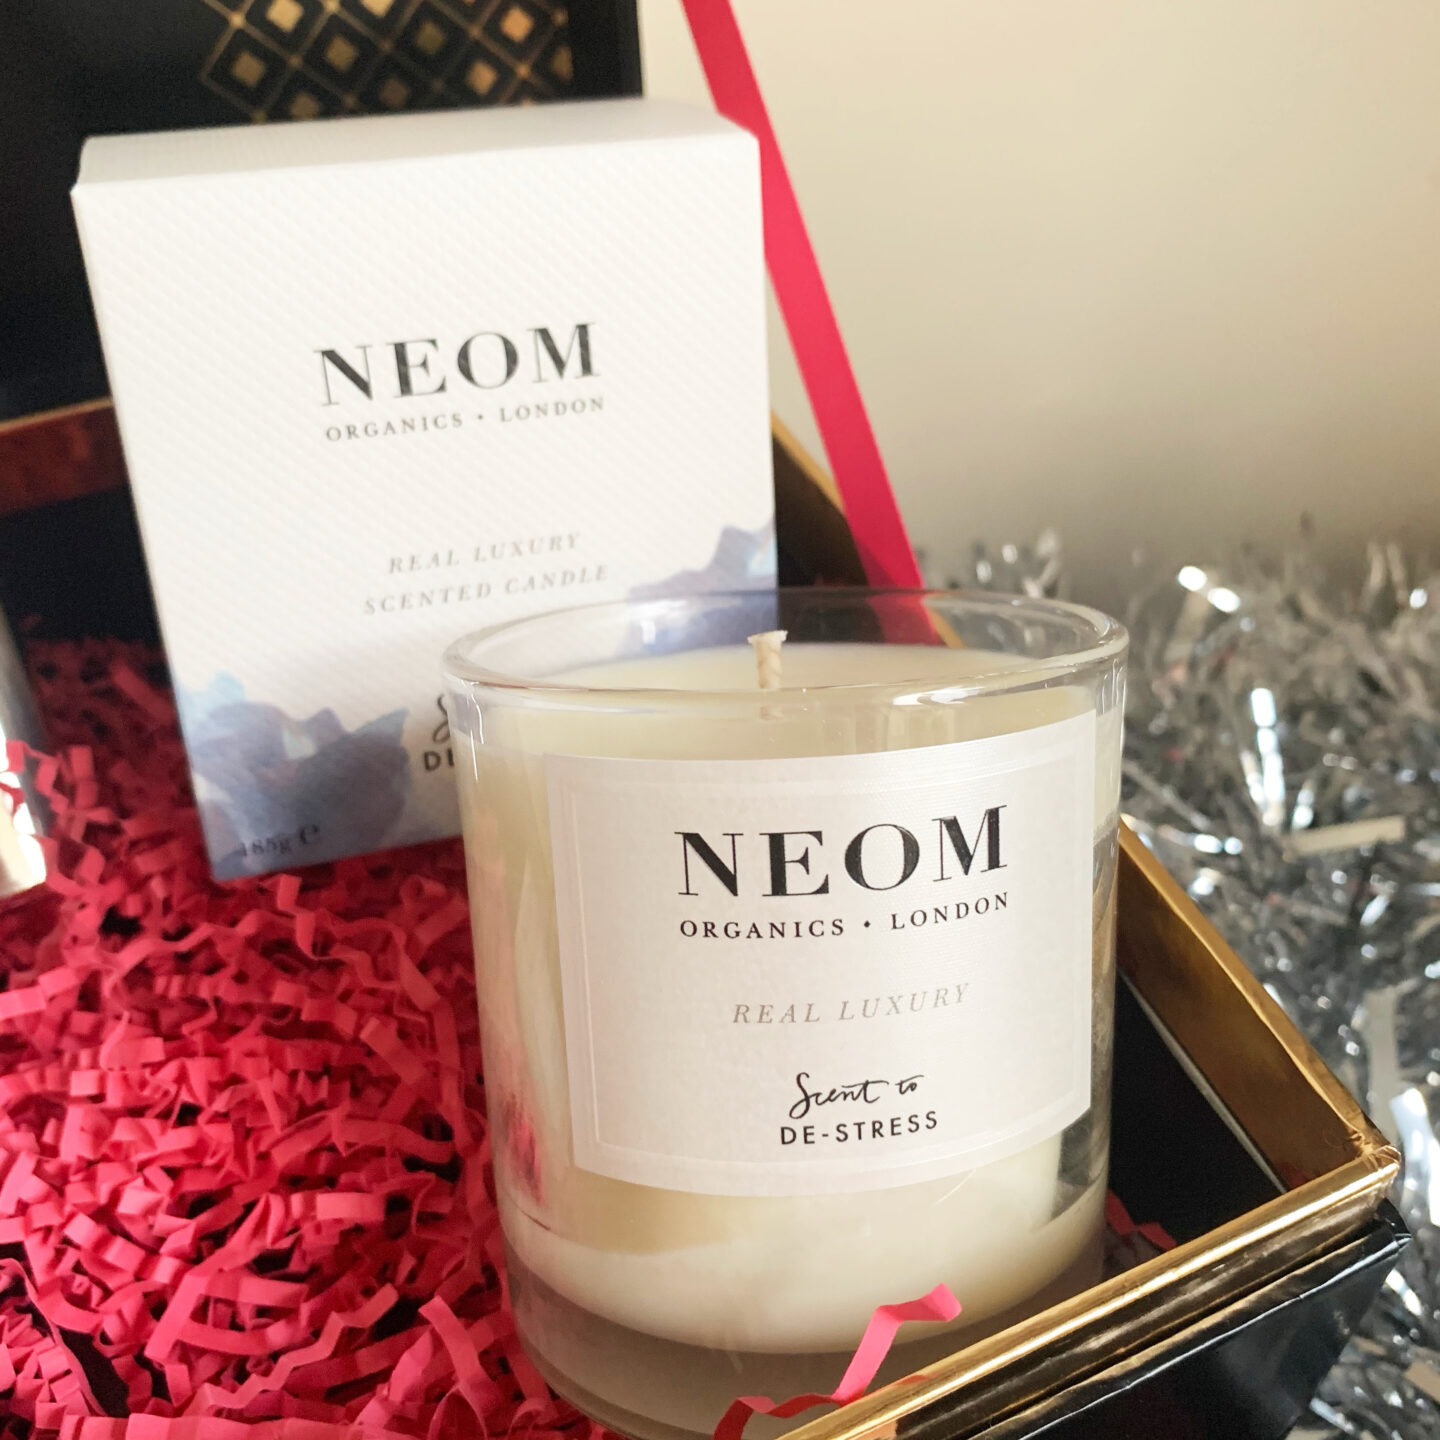 Neom Organics Luxury Standard Scented Candle  - Look Fantastic Beauty Chest 2020 - Miss Boux